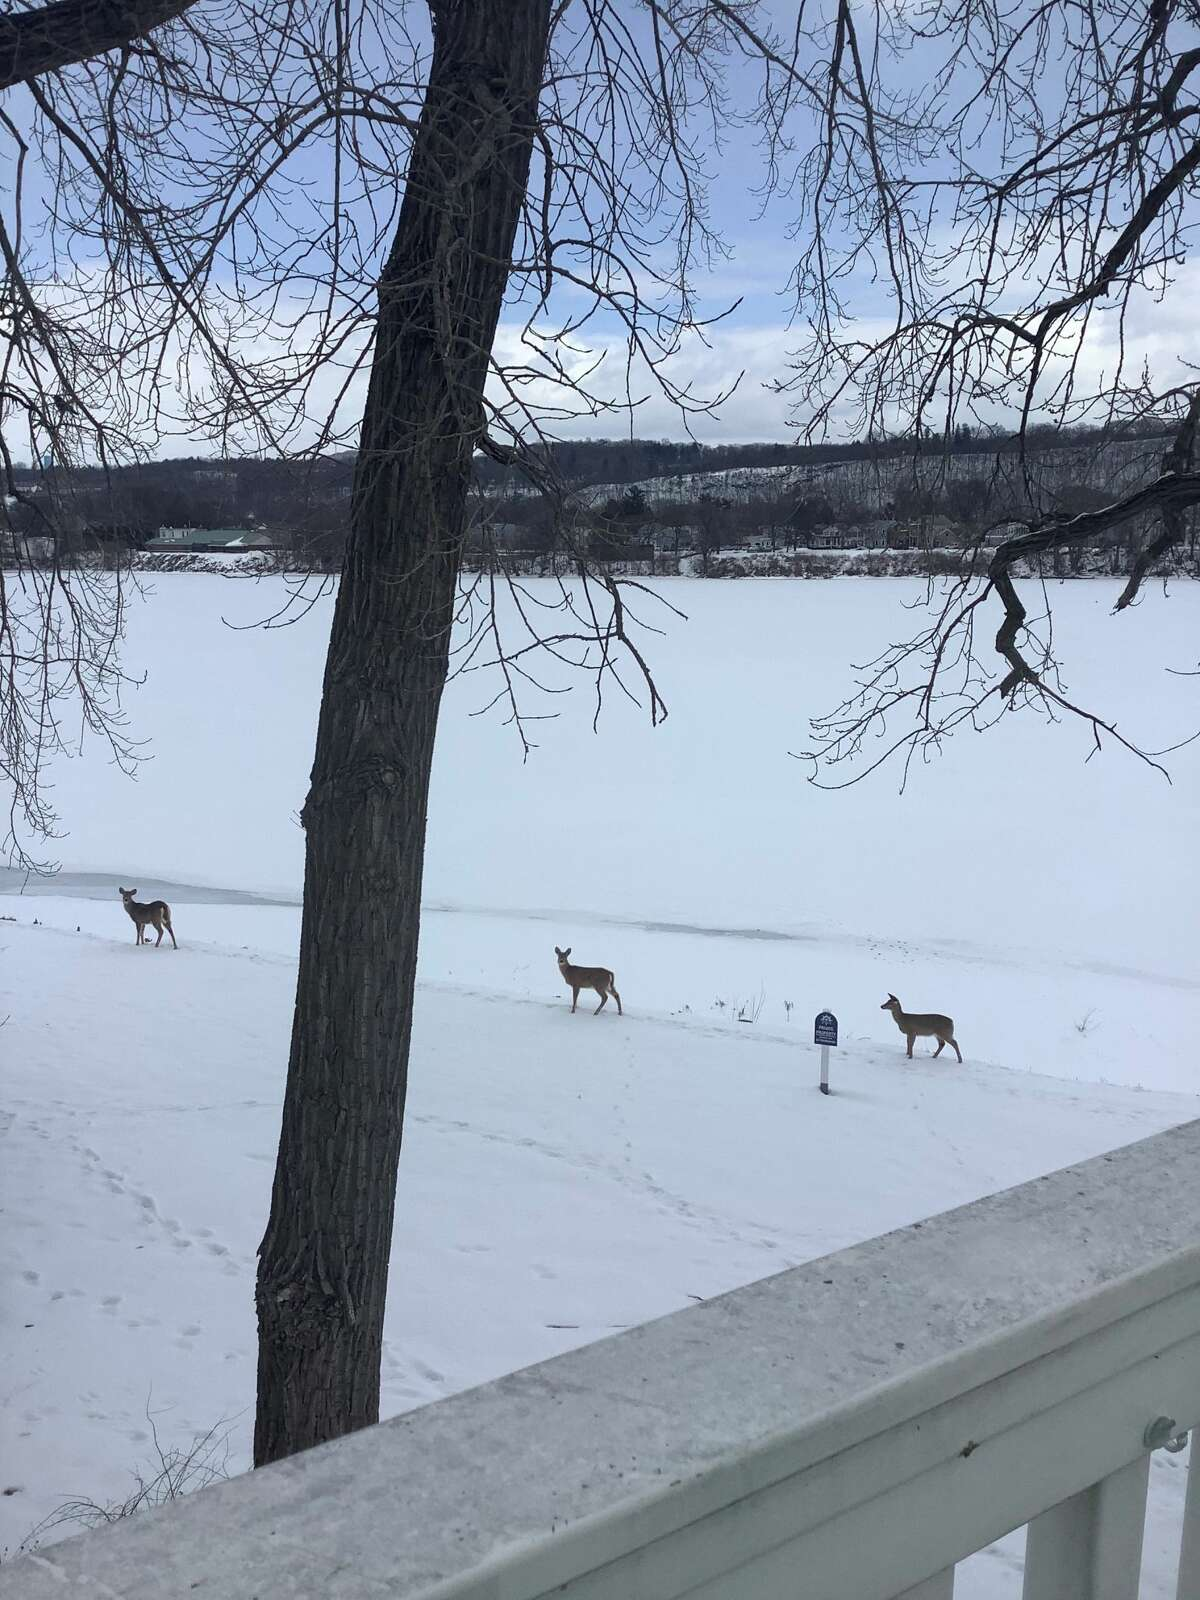 Deer return from their afternoon walk across the iced-over Hudson River to Green Island. This walk has occurred every afternoon this week around 4 p,m., says Jim Sheehan. Younger deer go first, walking widely apart, testing the ice. If they go all the way across, the older deer follow, he notes.